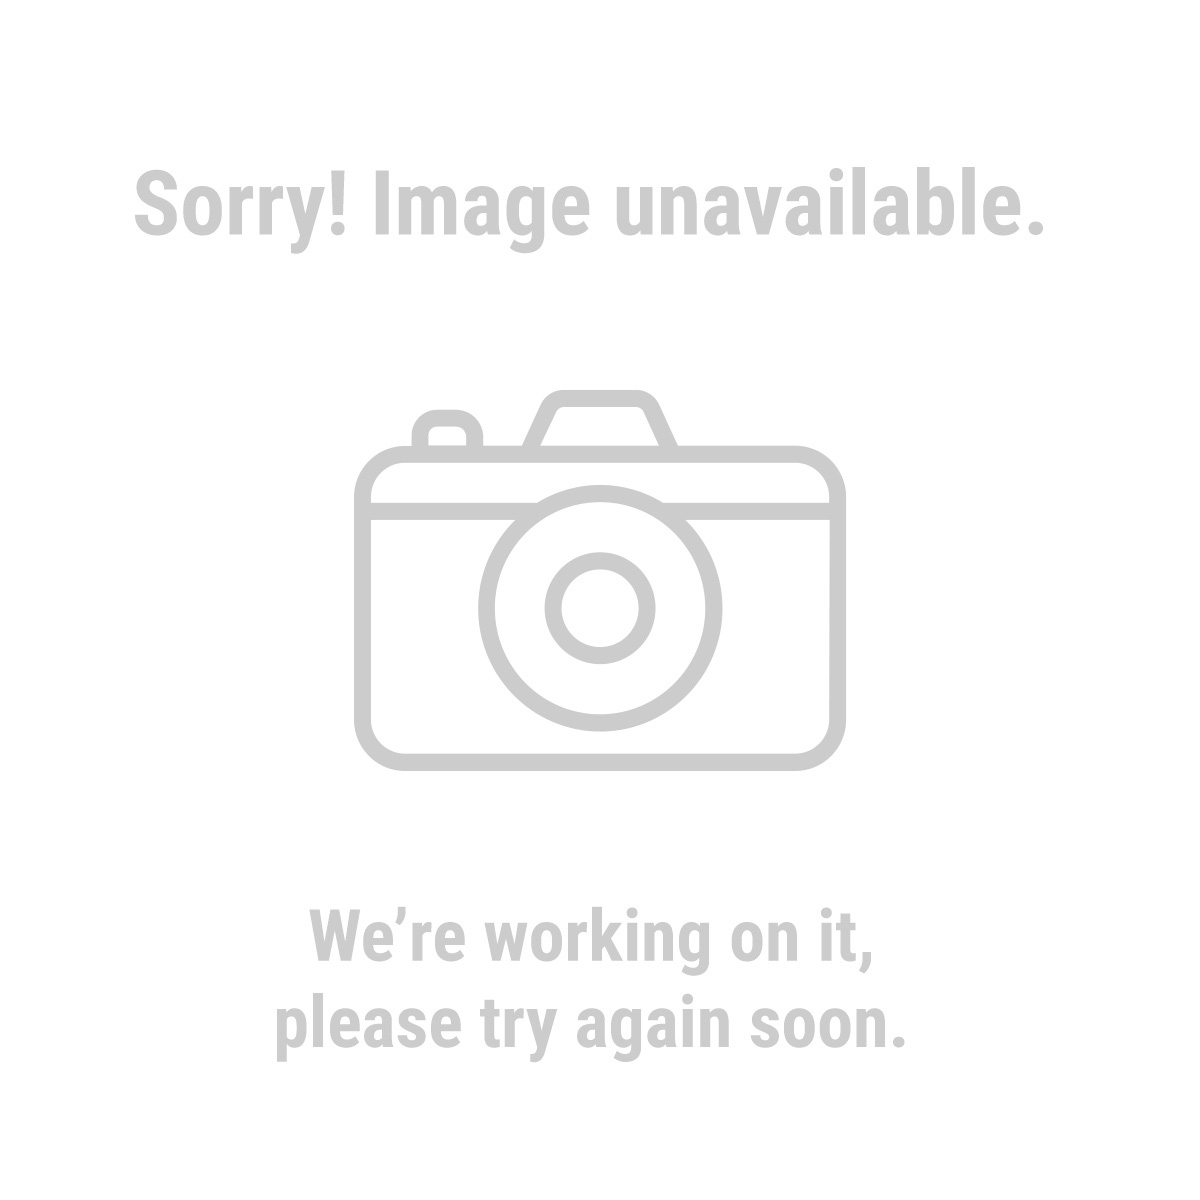 Pittsburgh® 94931 6 Piece Mini Pliers Set